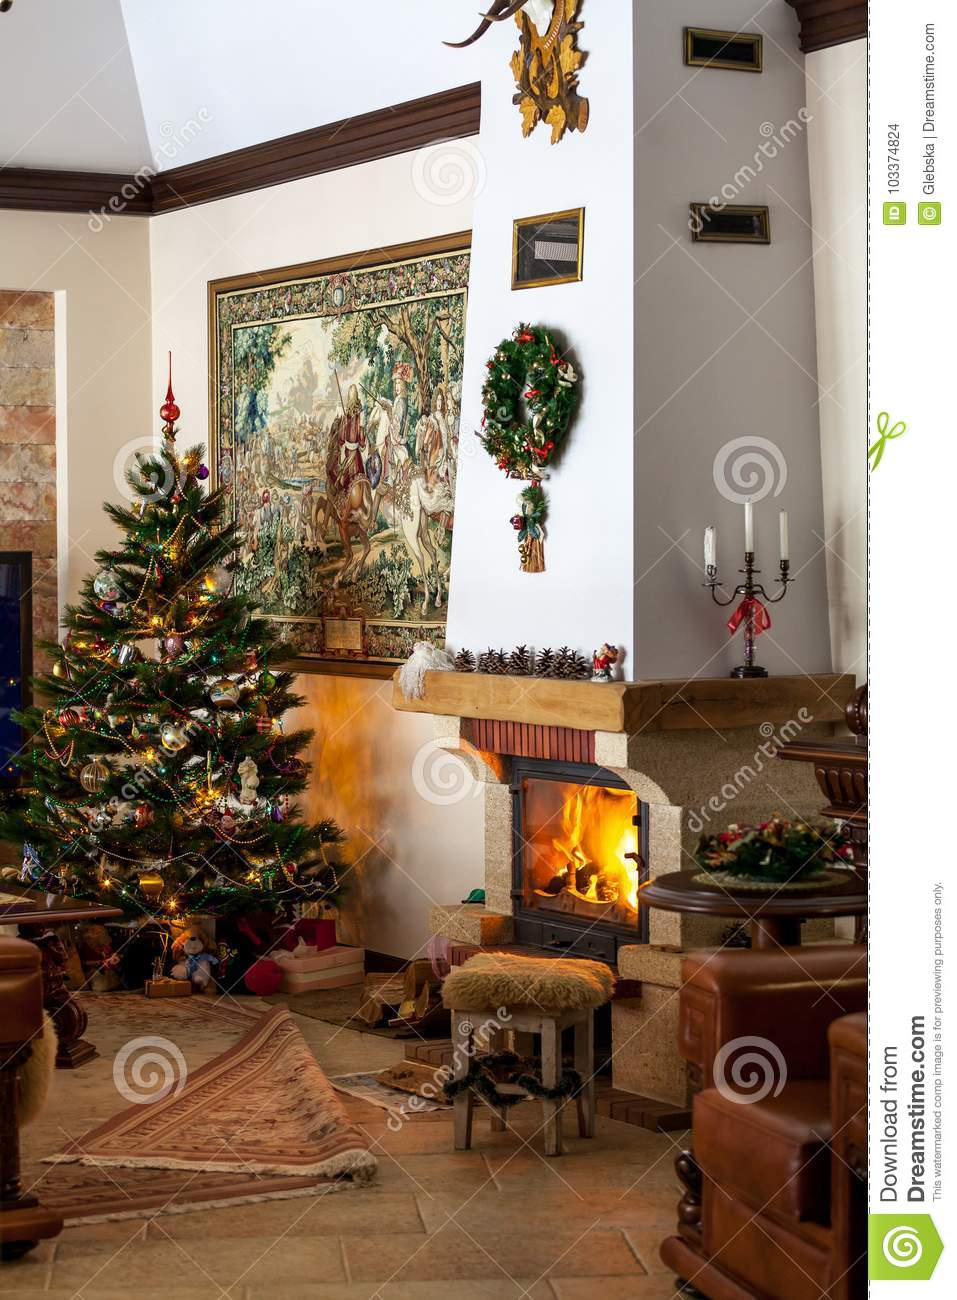 Cozy House With Fireplace For New Year Editorial Stock Image Image Of Candle Garland 103374824